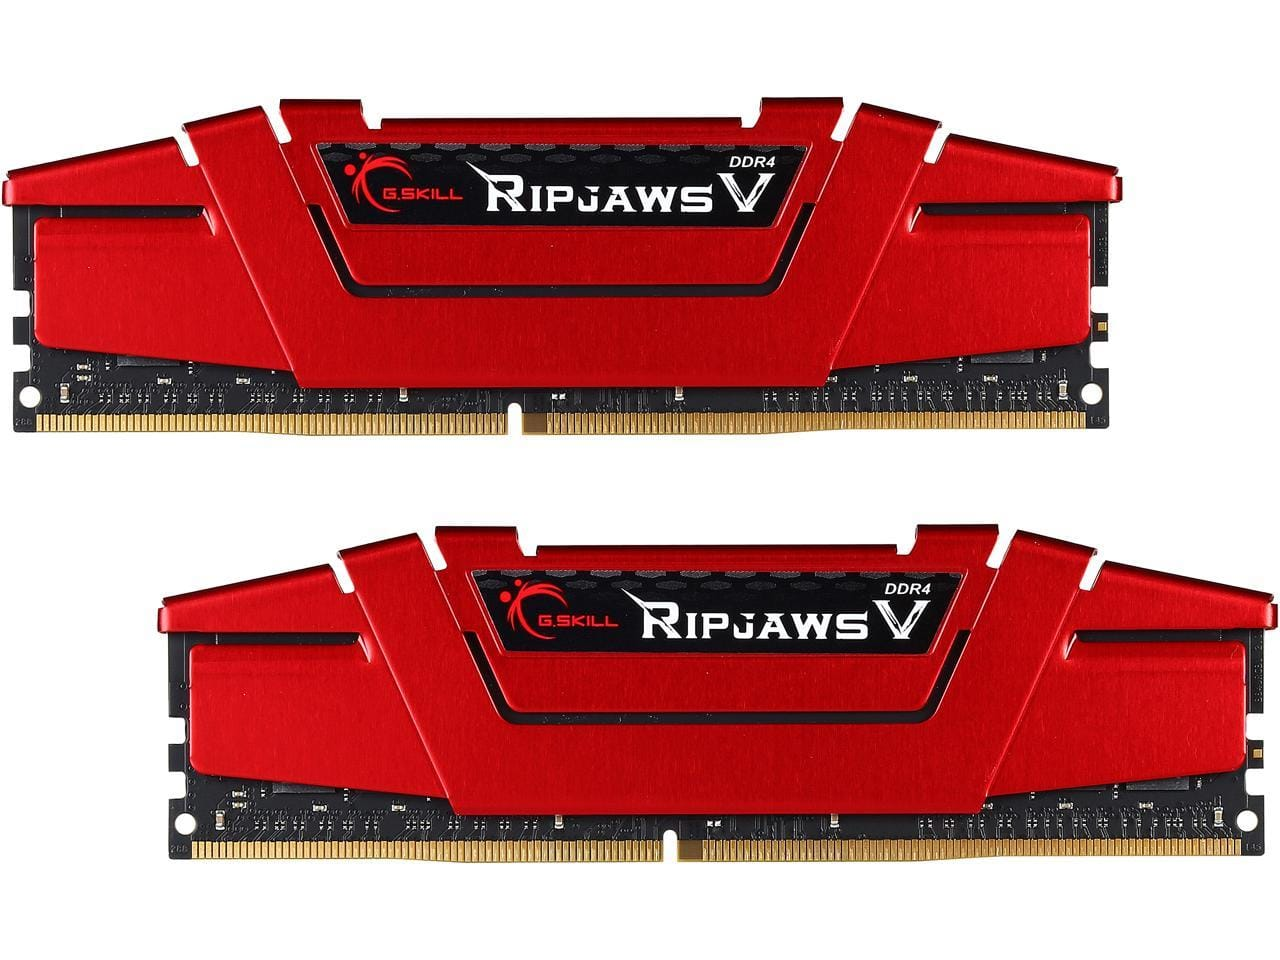 G.SKILL Ripjaws V Series 32GB (2 x 16GB) DDR4 SDRAM 3200 $109.99 + FS